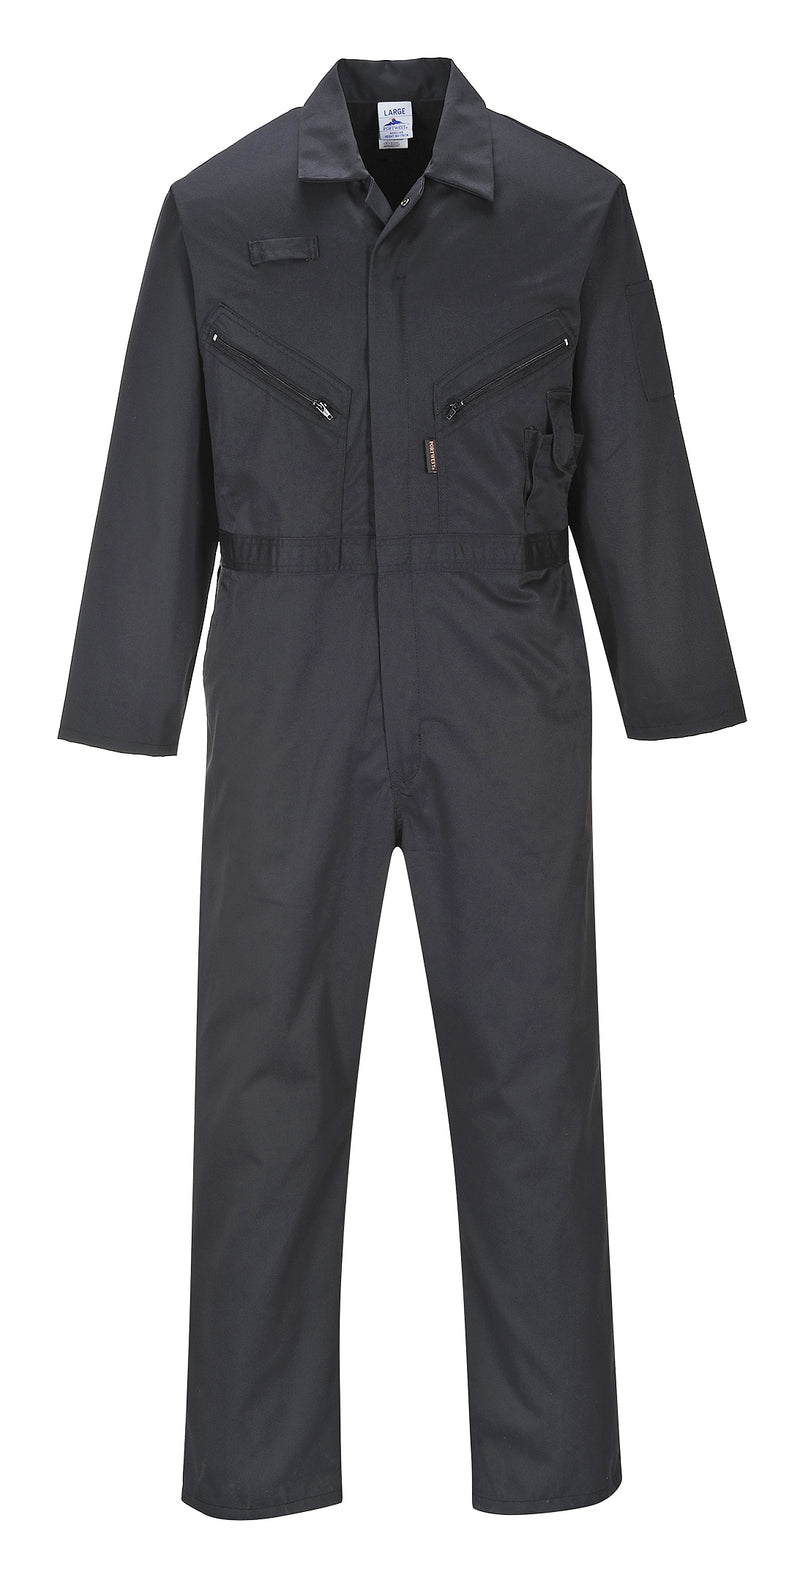 Portwest Zip Coverall Boilersuit C813